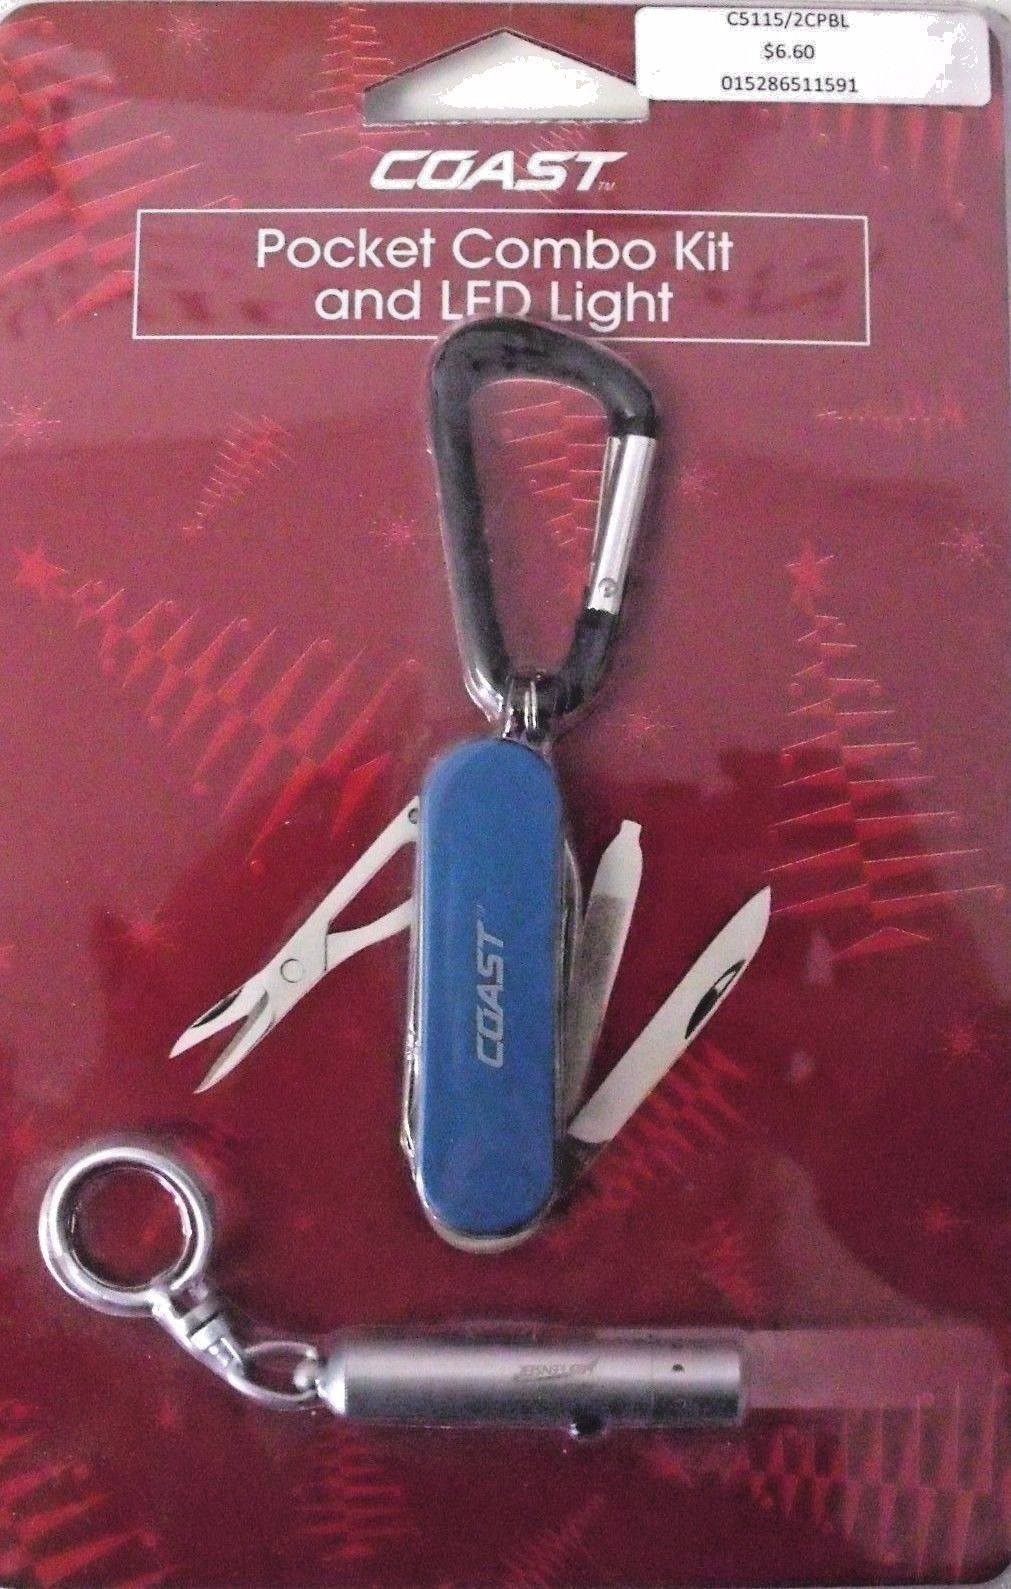 Coast C5115/2CP BLUE Pocket Combo Knife and LED Flashlight